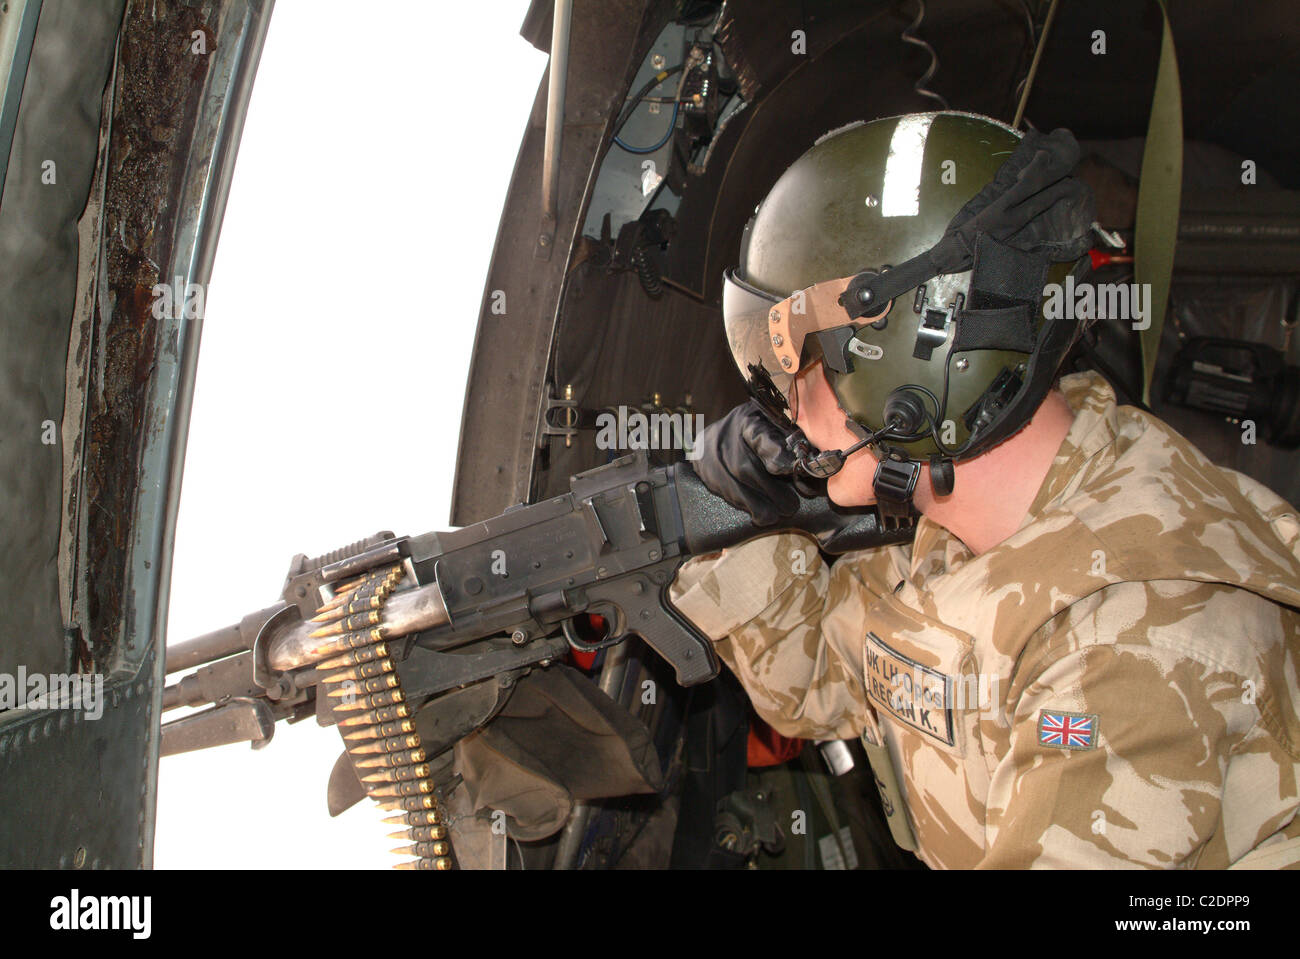 Royal Navy helicopter door gunner in Iraq. - Stock Image & Door Gunner Stock Photos u0026 Door Gunner Stock Images - Alamy